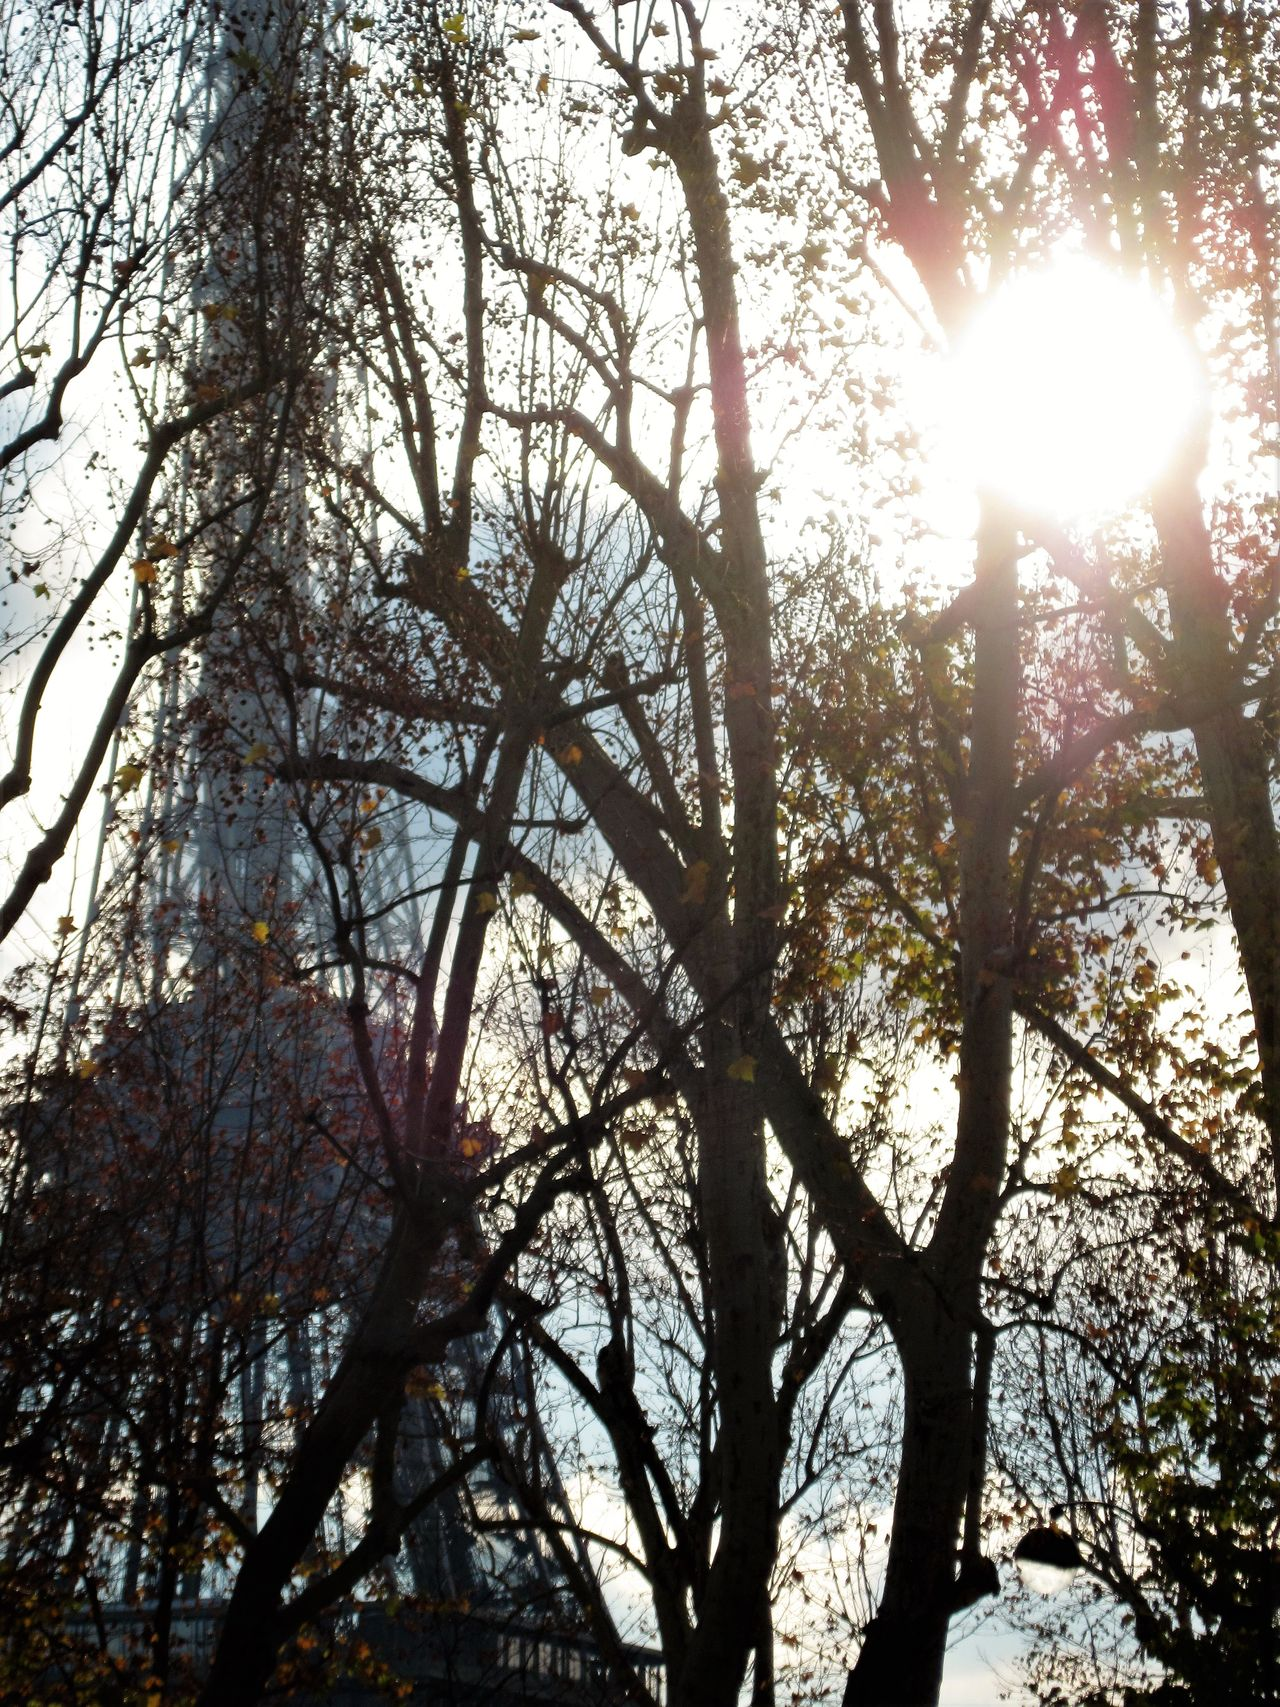 Back Lit Beauty In Nature Branch Day Eiffel Tower Growth Lens Flare Low Angle View Nature No People Outdoors Sky Streaming Sun Sunbeam Sunlight Tranquility Tree Trees